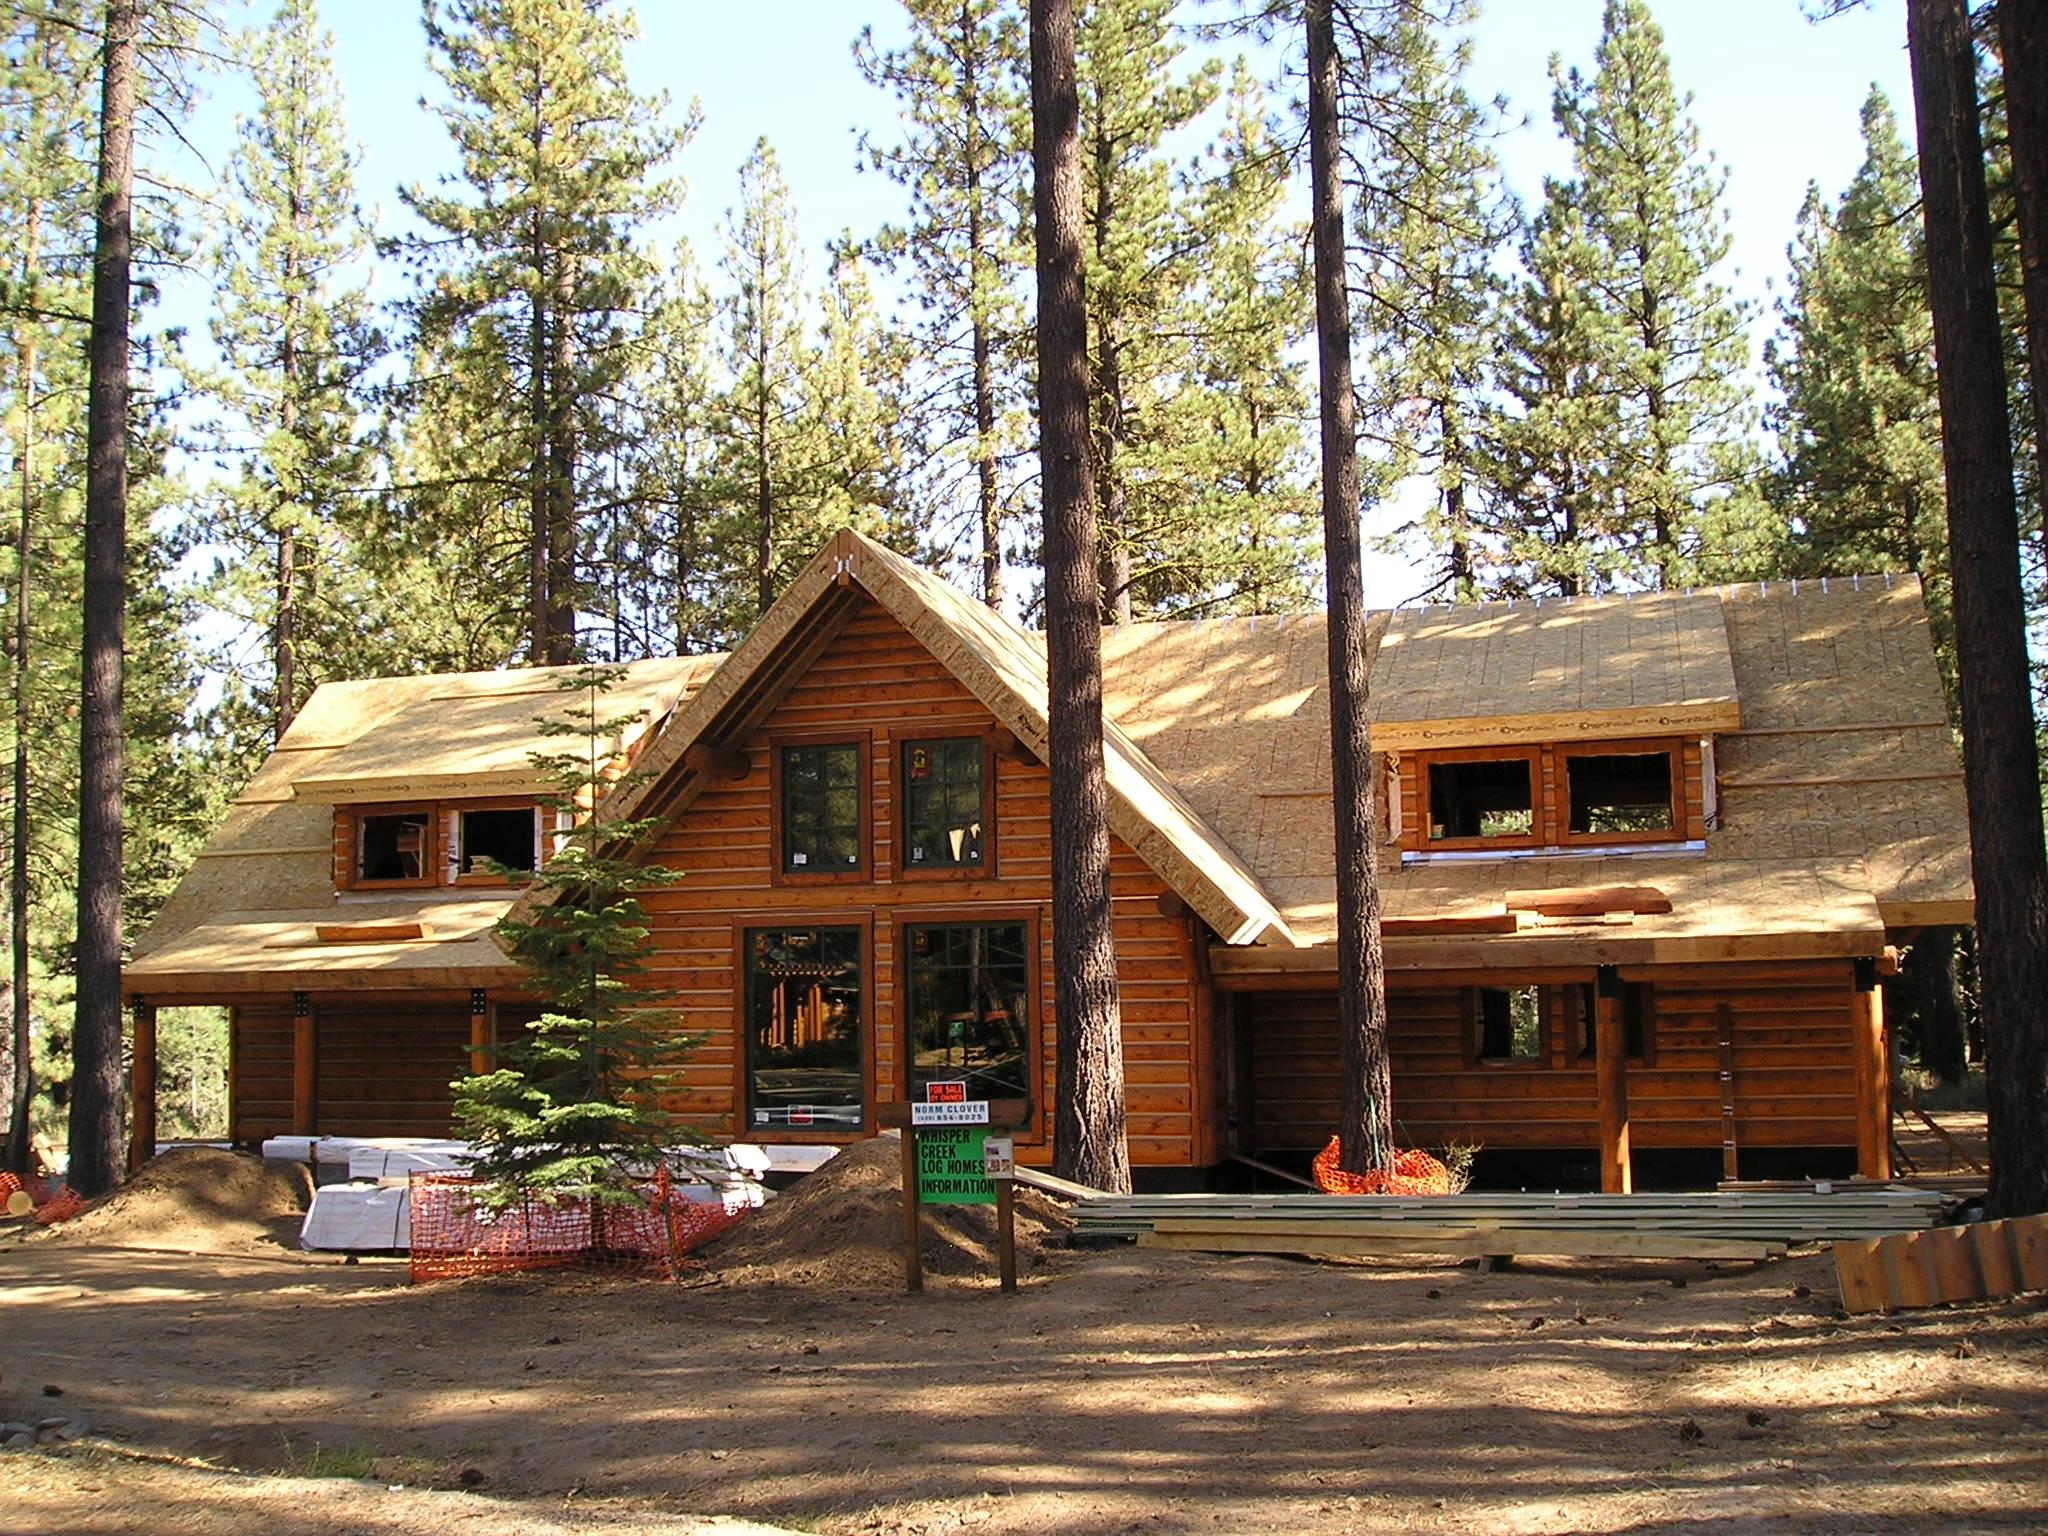 lake tahoe log homes,truckee log home builders,log home dealers ca, log builder calif.building log home truckee, mt. rose,nv,utah log home builders,